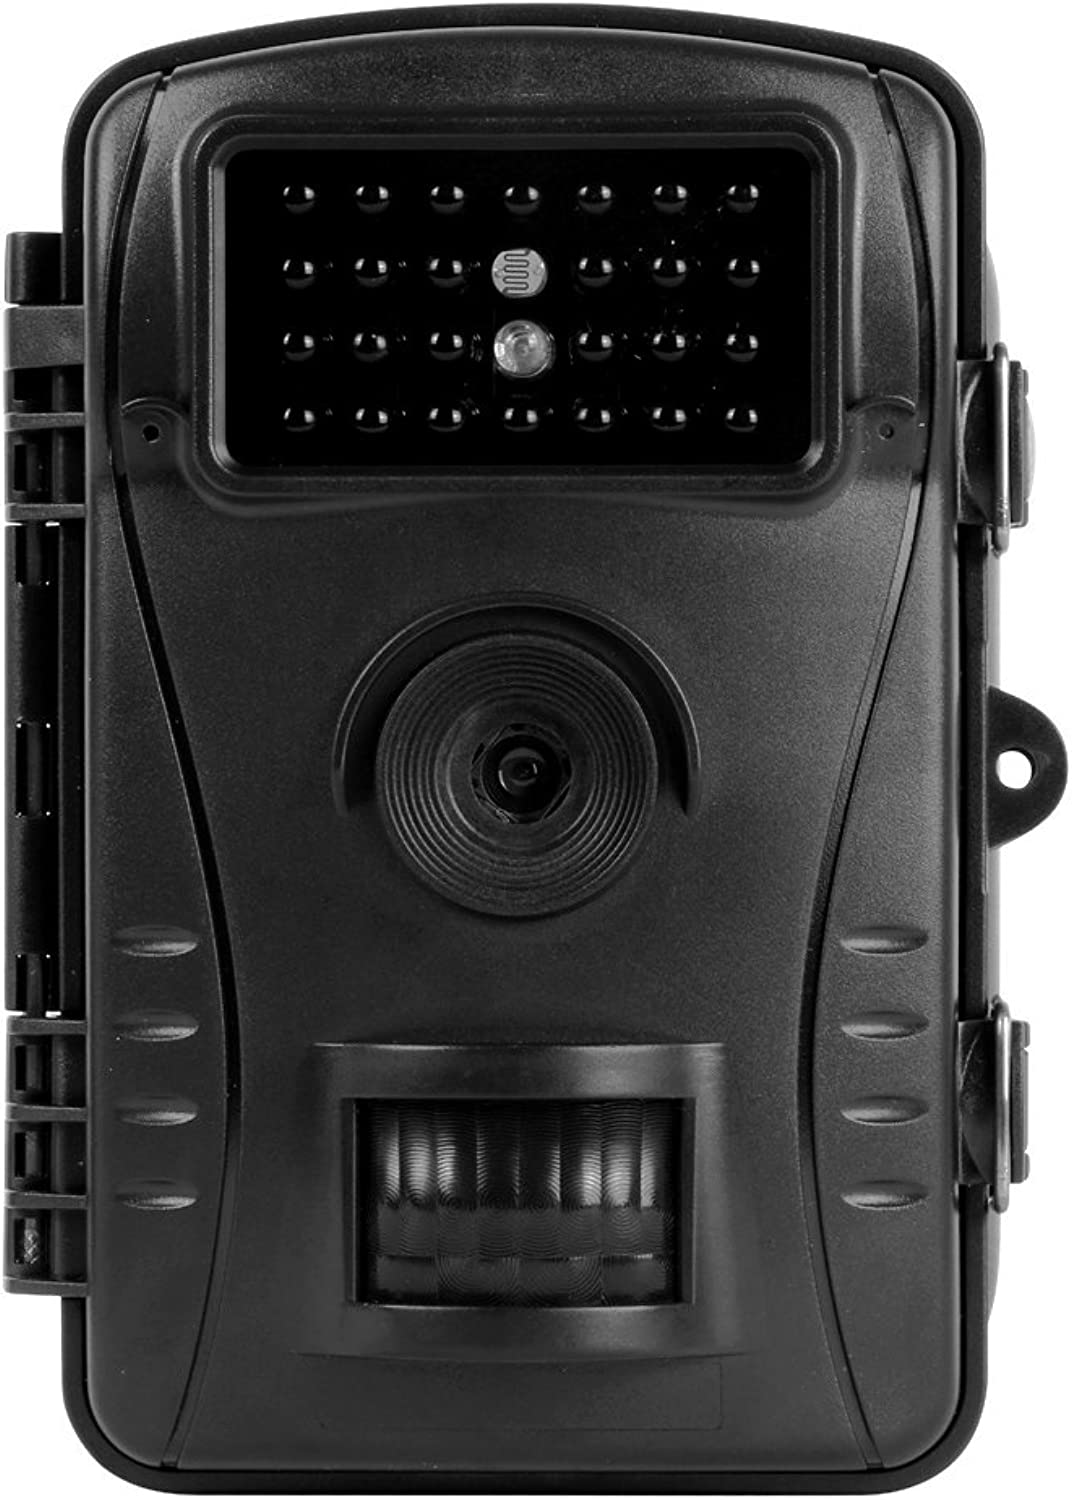 ESHOWEE Trail Camera,Hunting Wildlife Camera Digital 2.4  LCD Screen HD 50FT Night Vision Distance With Waterproof Case